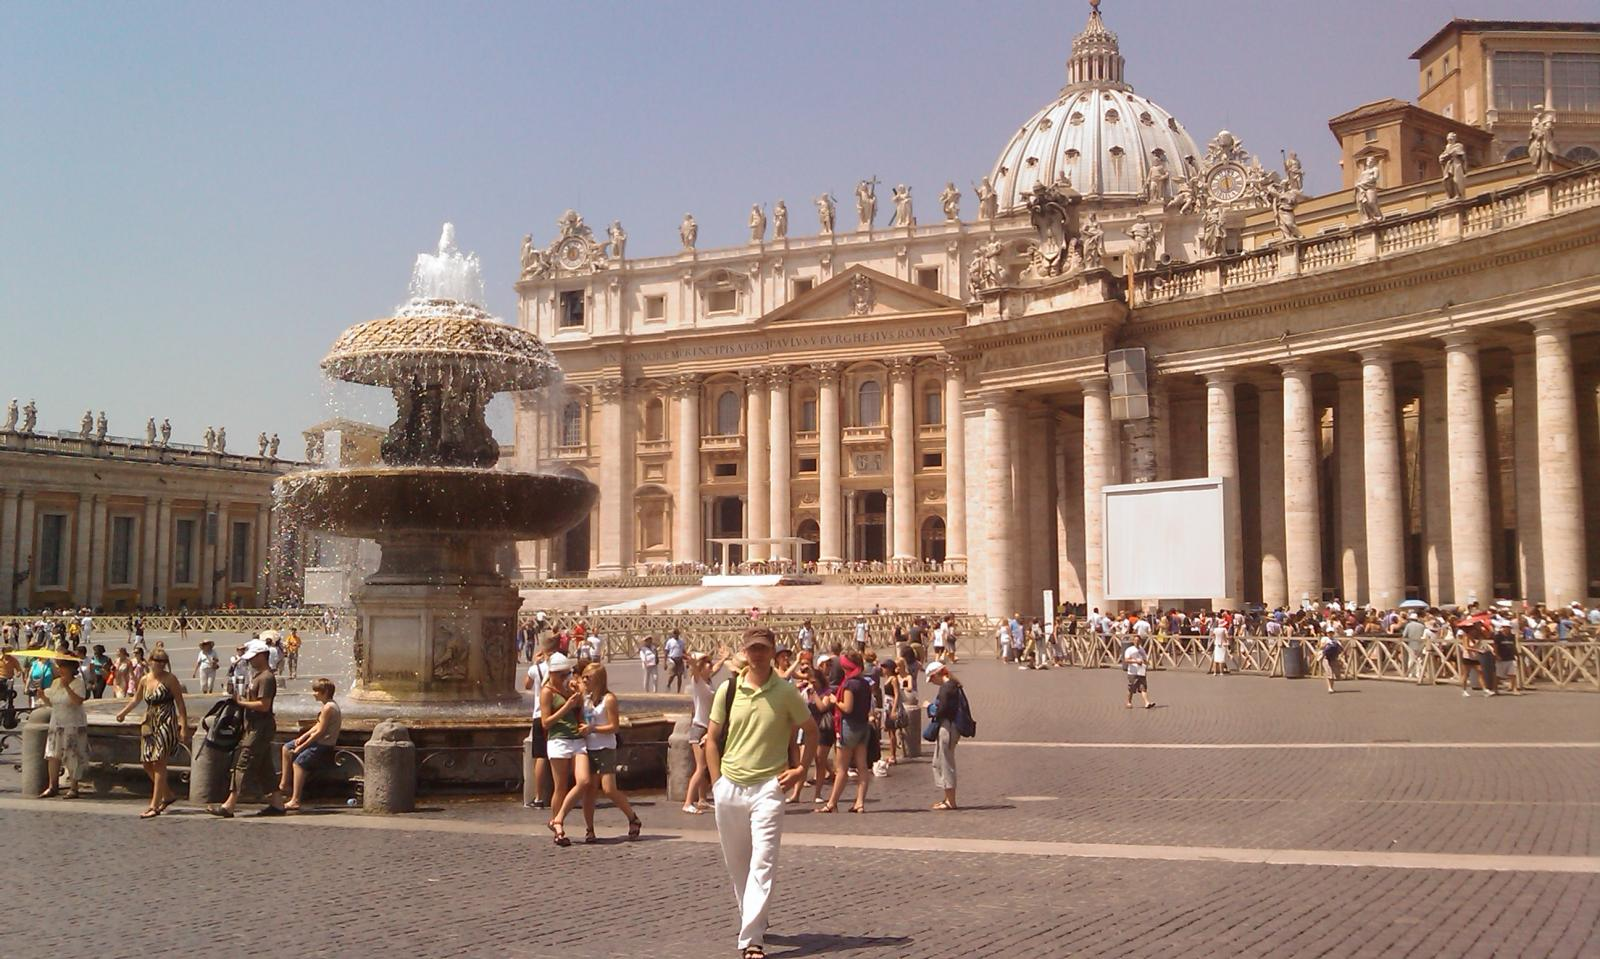 Vaticano - Piazza San Pietro (long queues one day and the next days just a few people, strange)